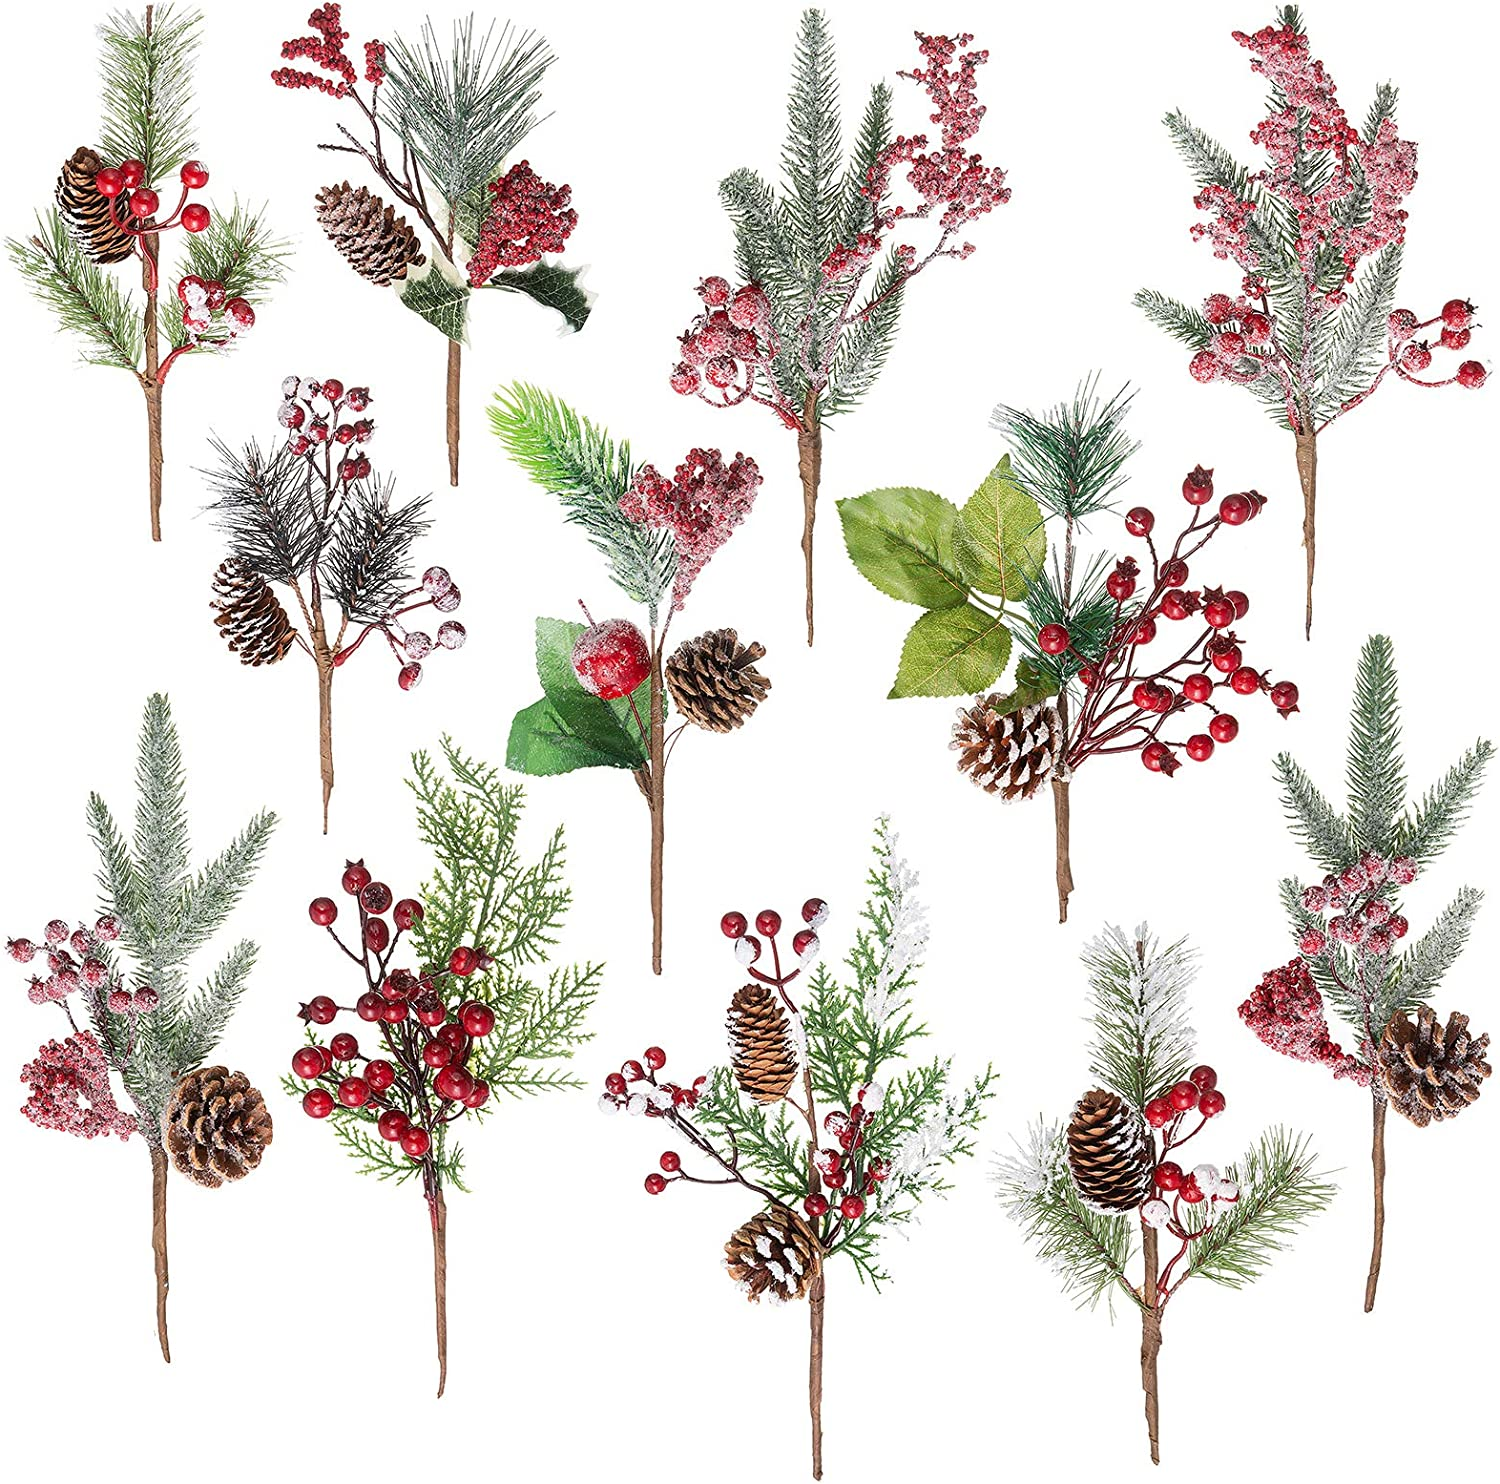 Snowy pine flower picks with pinecones to decorate your Christmas tree!